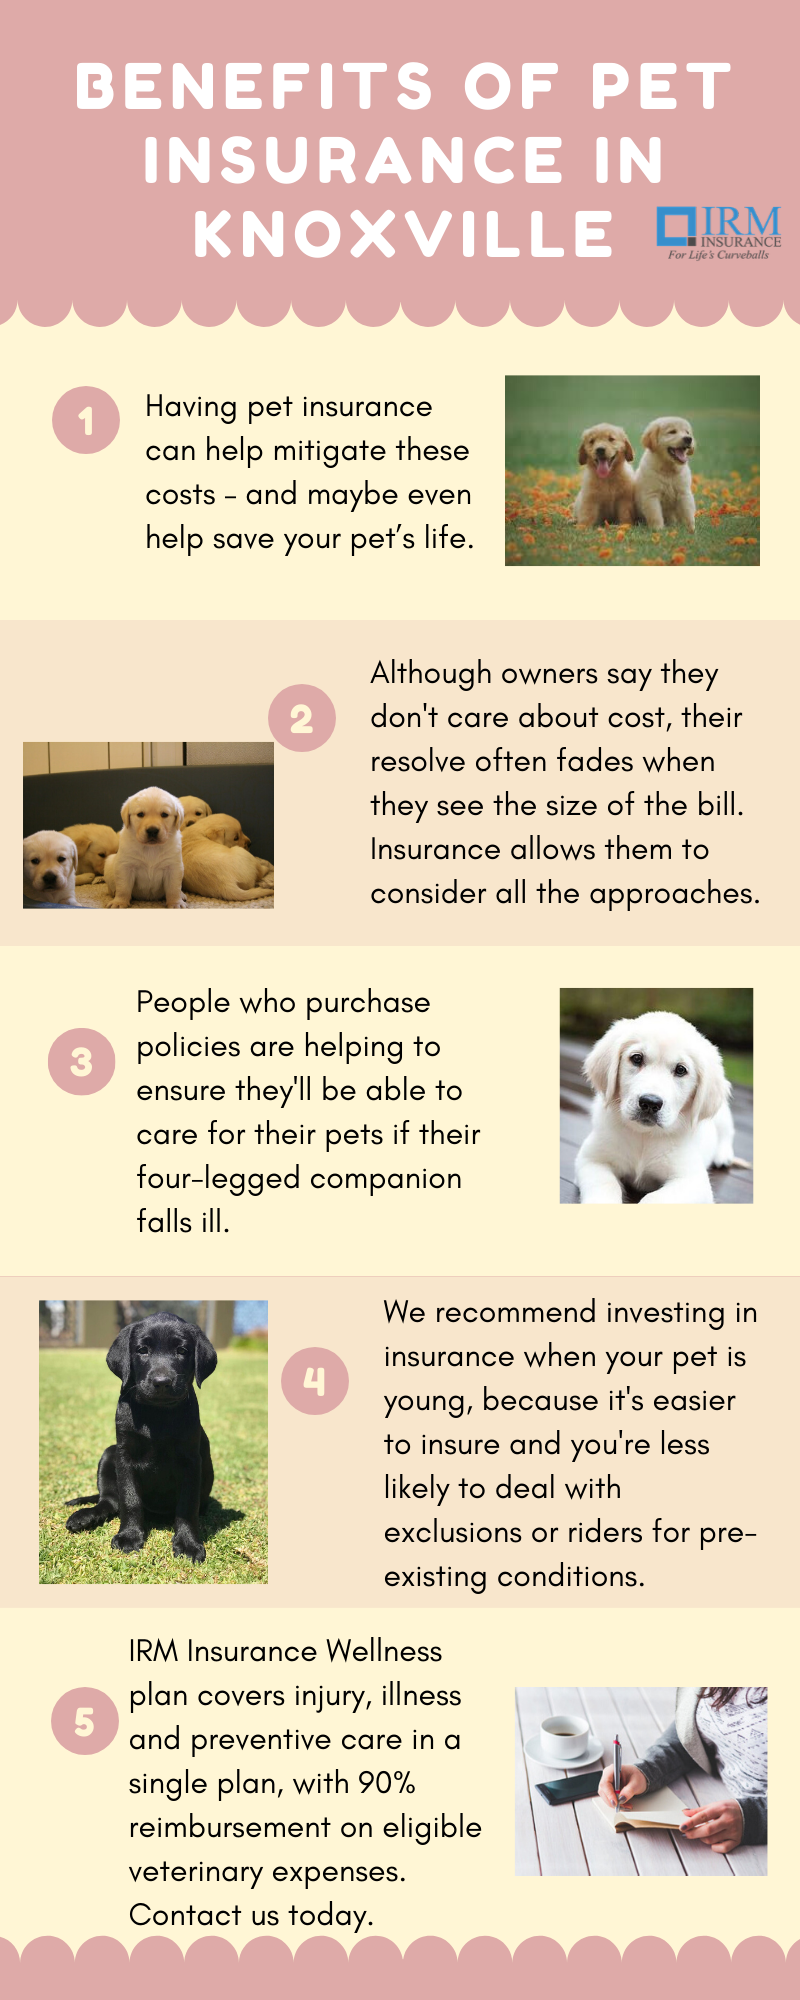 Pet Insurance Knoxville In 2020 Pet Insurance Knoxville Insurance